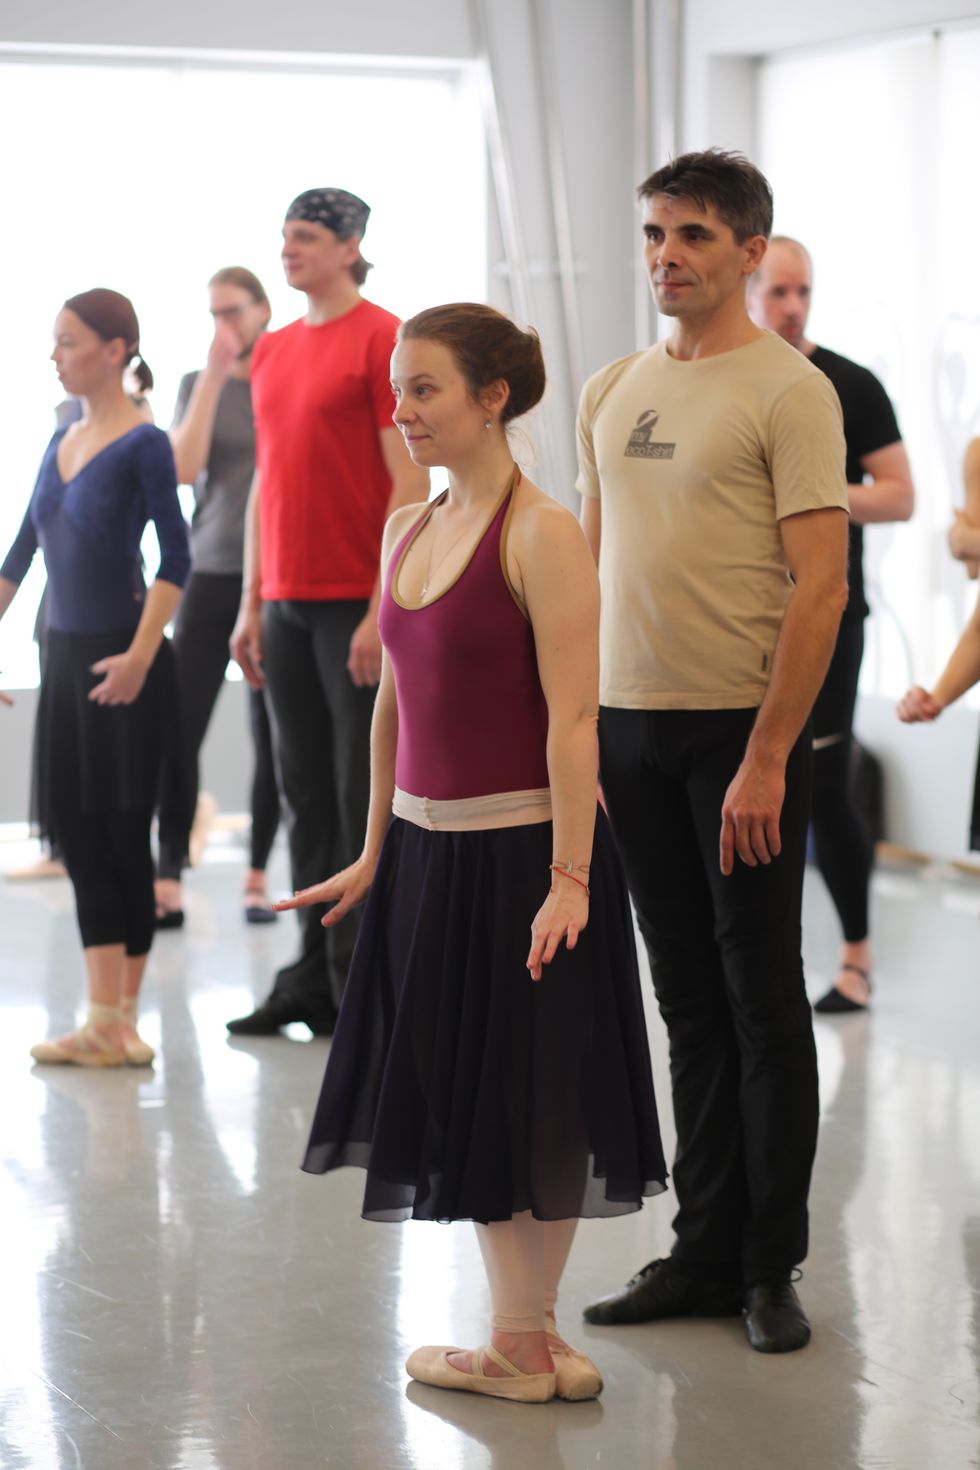 During a pas de deux class, a woman in a burgundy leotard, black skirt and pointe shoes stands in fifth position while her partner, in a beige T-shirt and black pants, stands behind her in a loose first position.